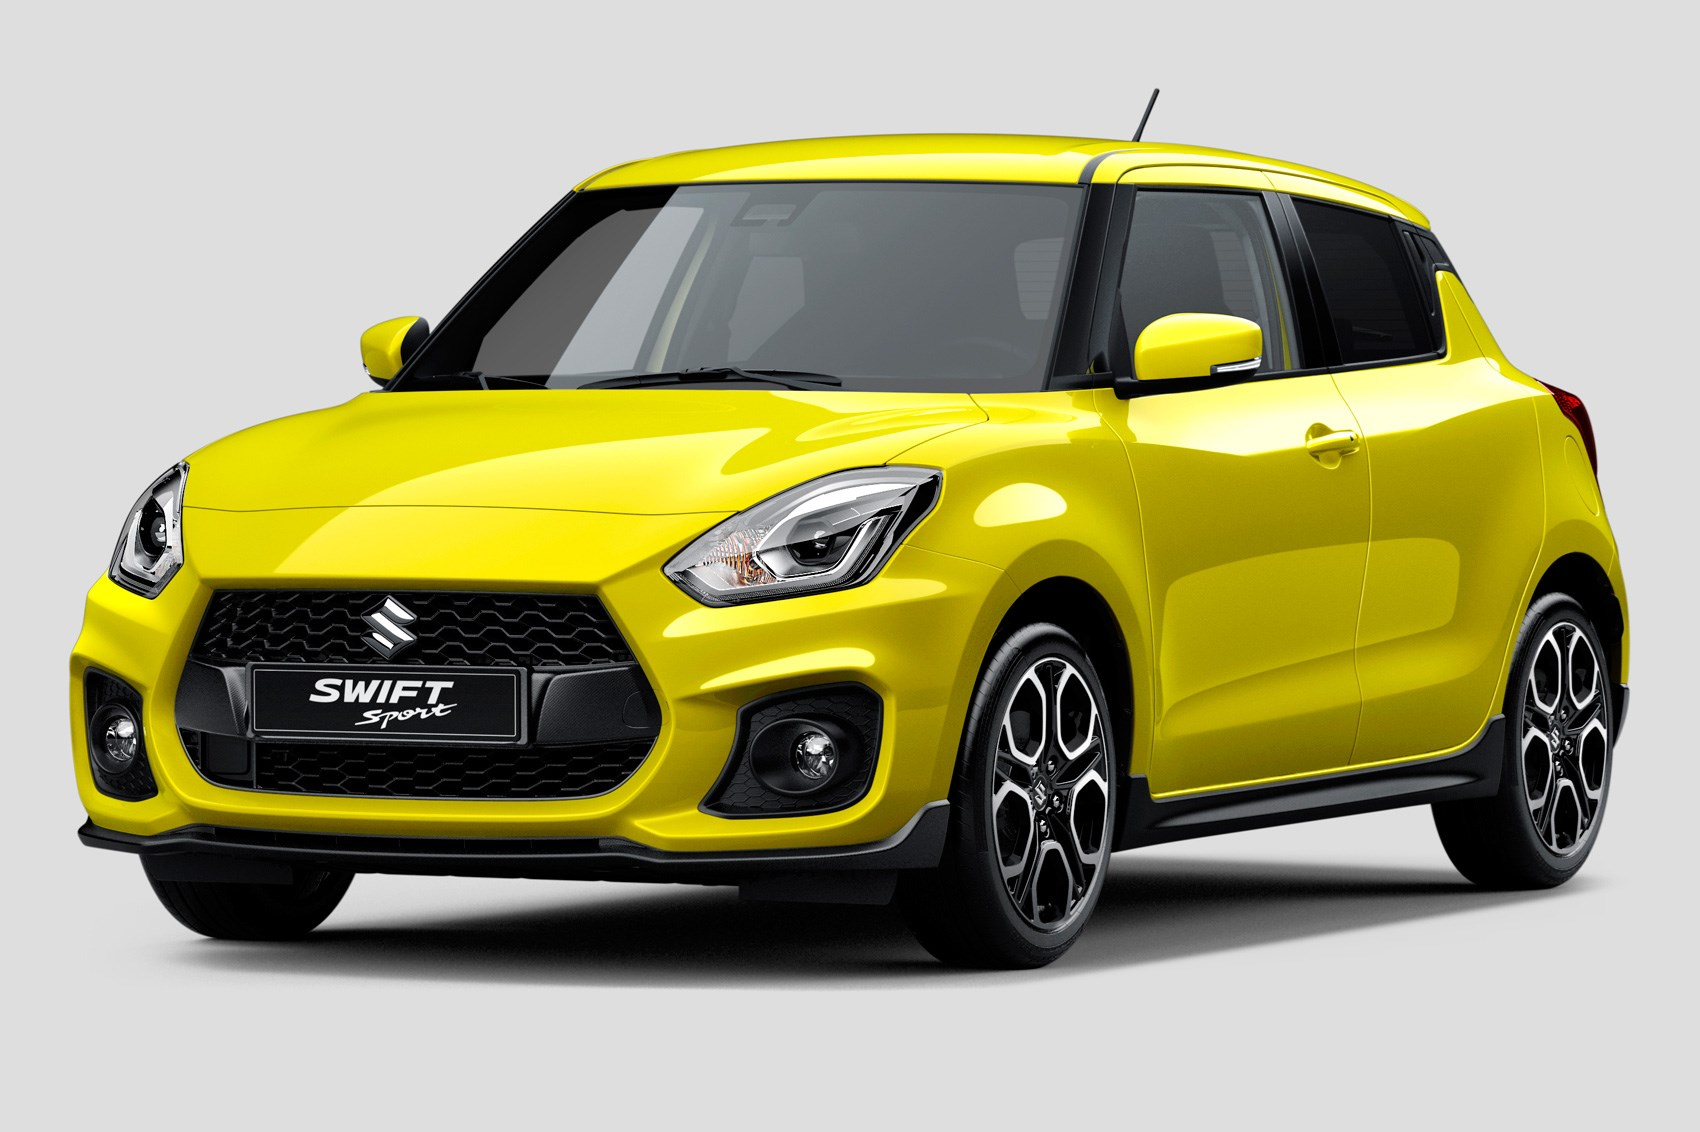 new 2017 suzuki swift sport fresh pictures of angry new hatch by car magazine. Black Bedroom Furniture Sets. Home Design Ideas